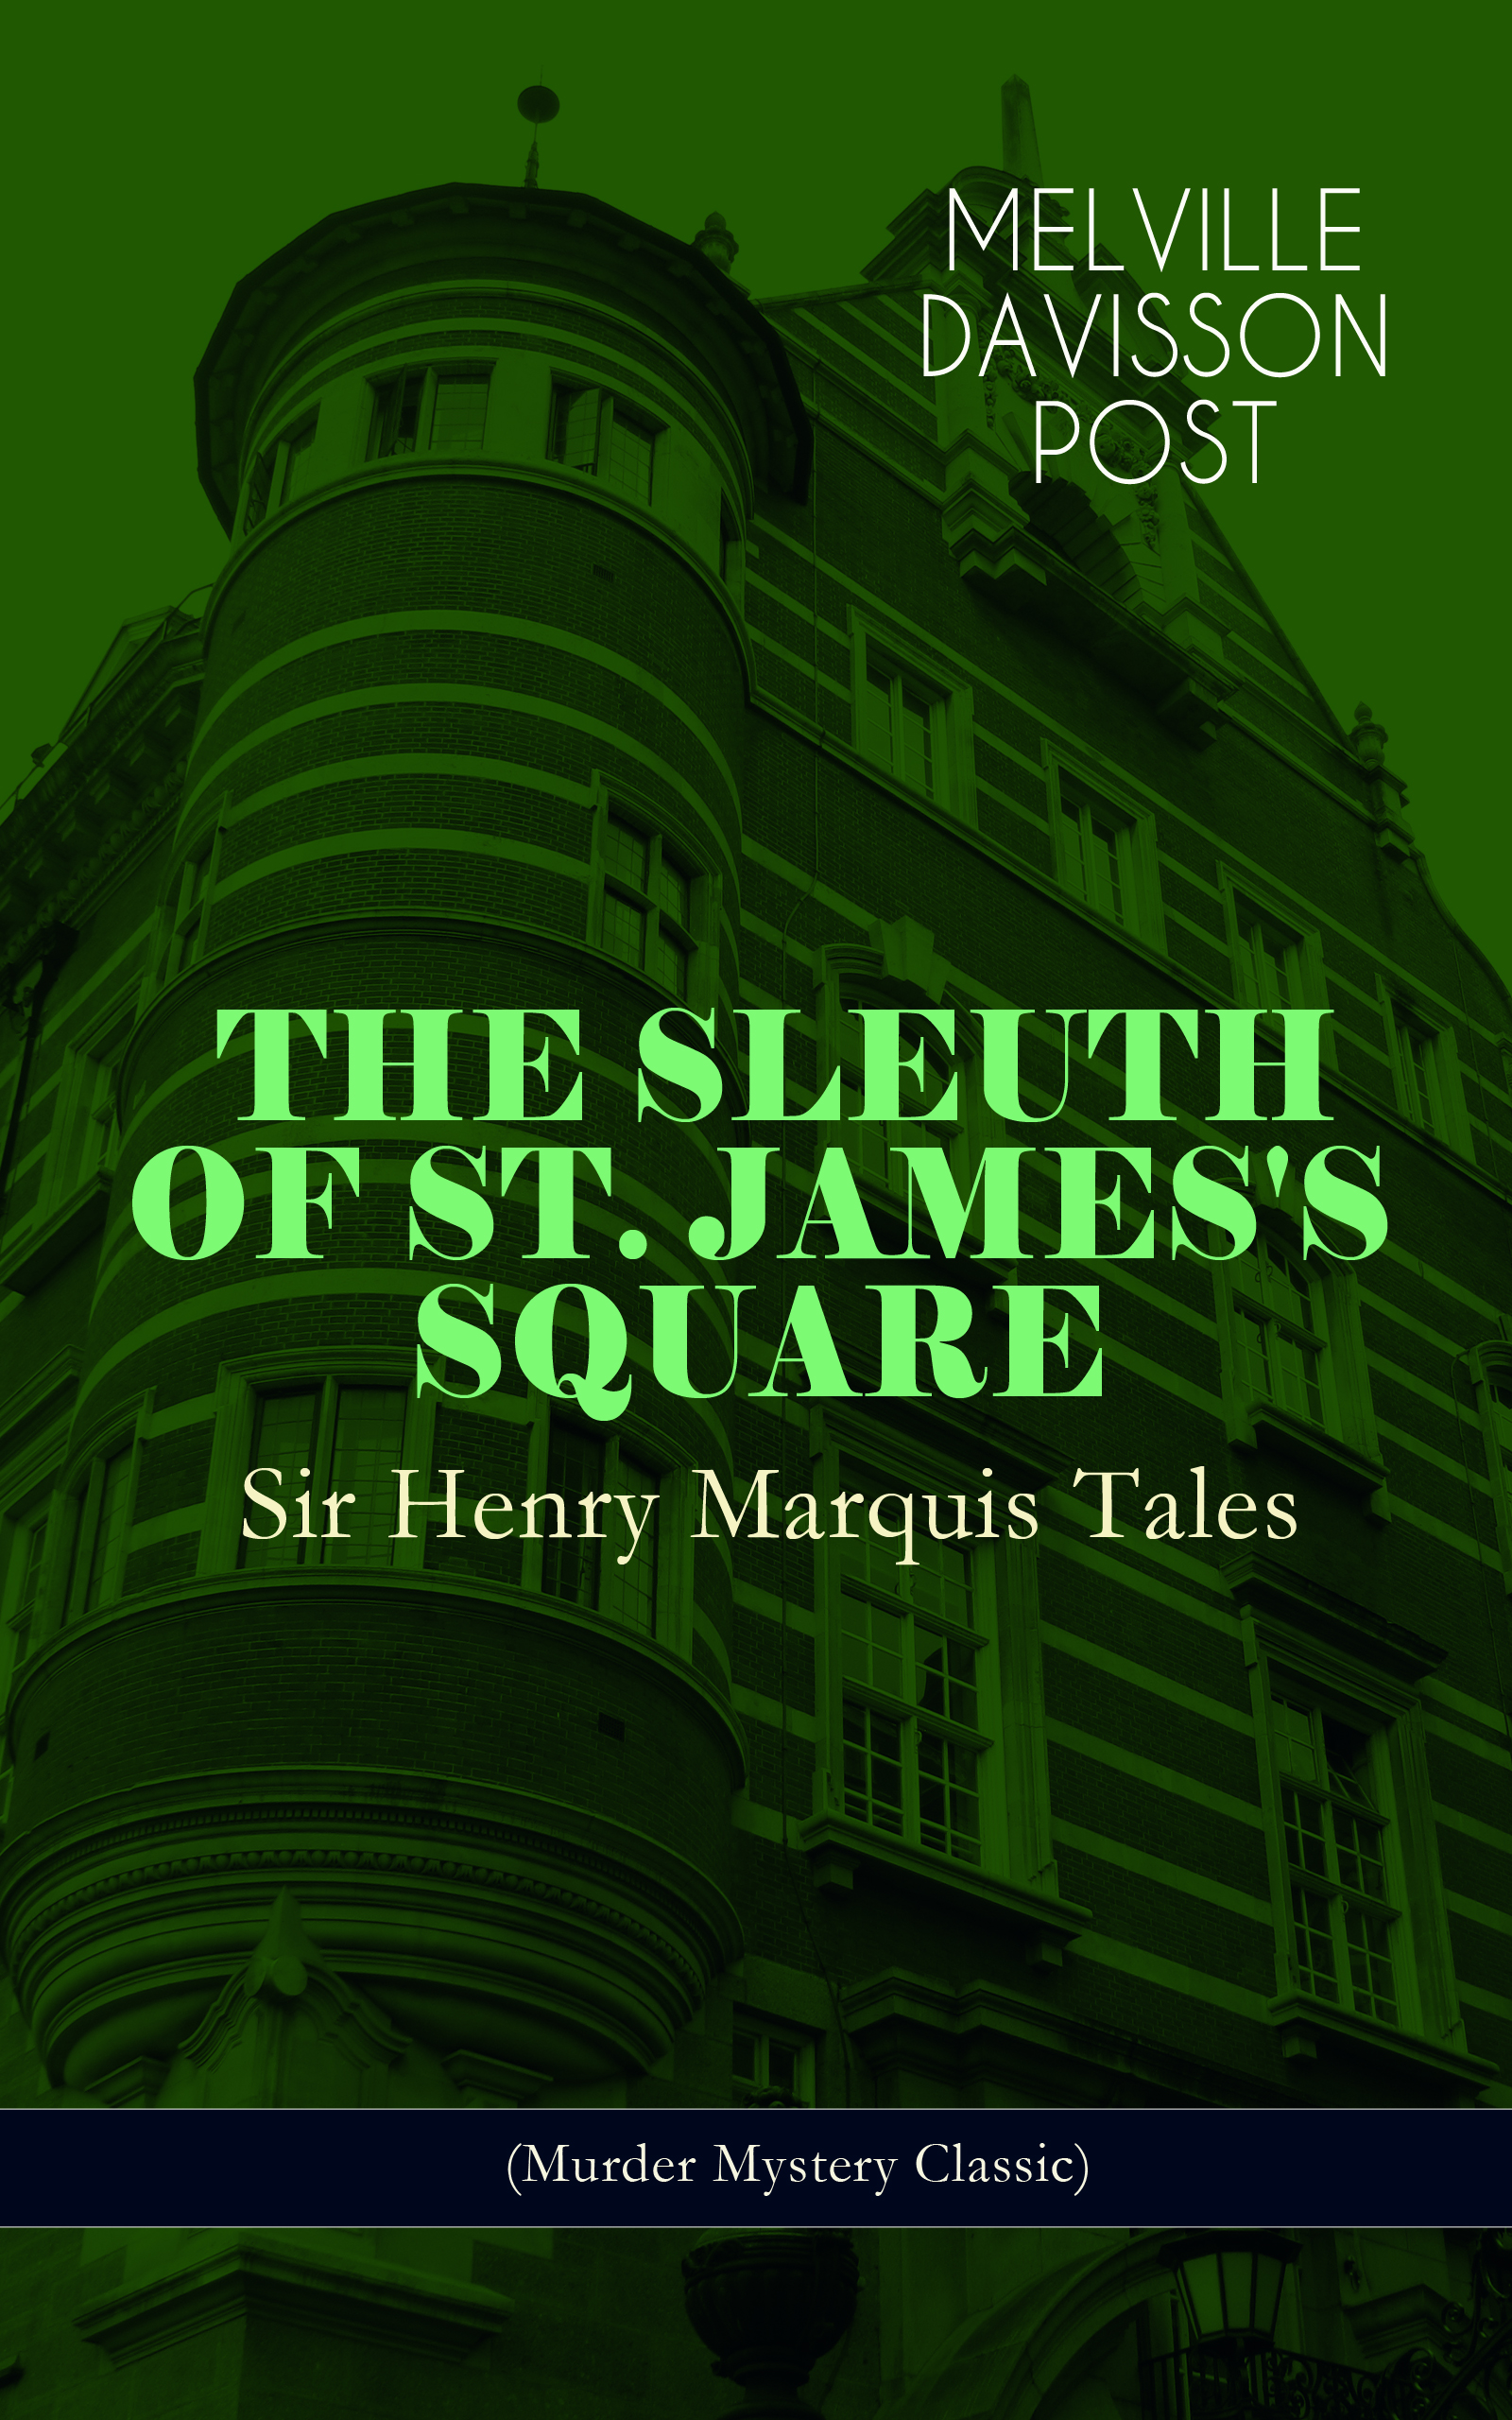 Melville Davisson Post THE SLEUTH OF ST. JAMES'S SQUARE: Sir Henry Marquis Tales (Murder Mystery Classic) john clark marshman memoirs of sir henry havelock